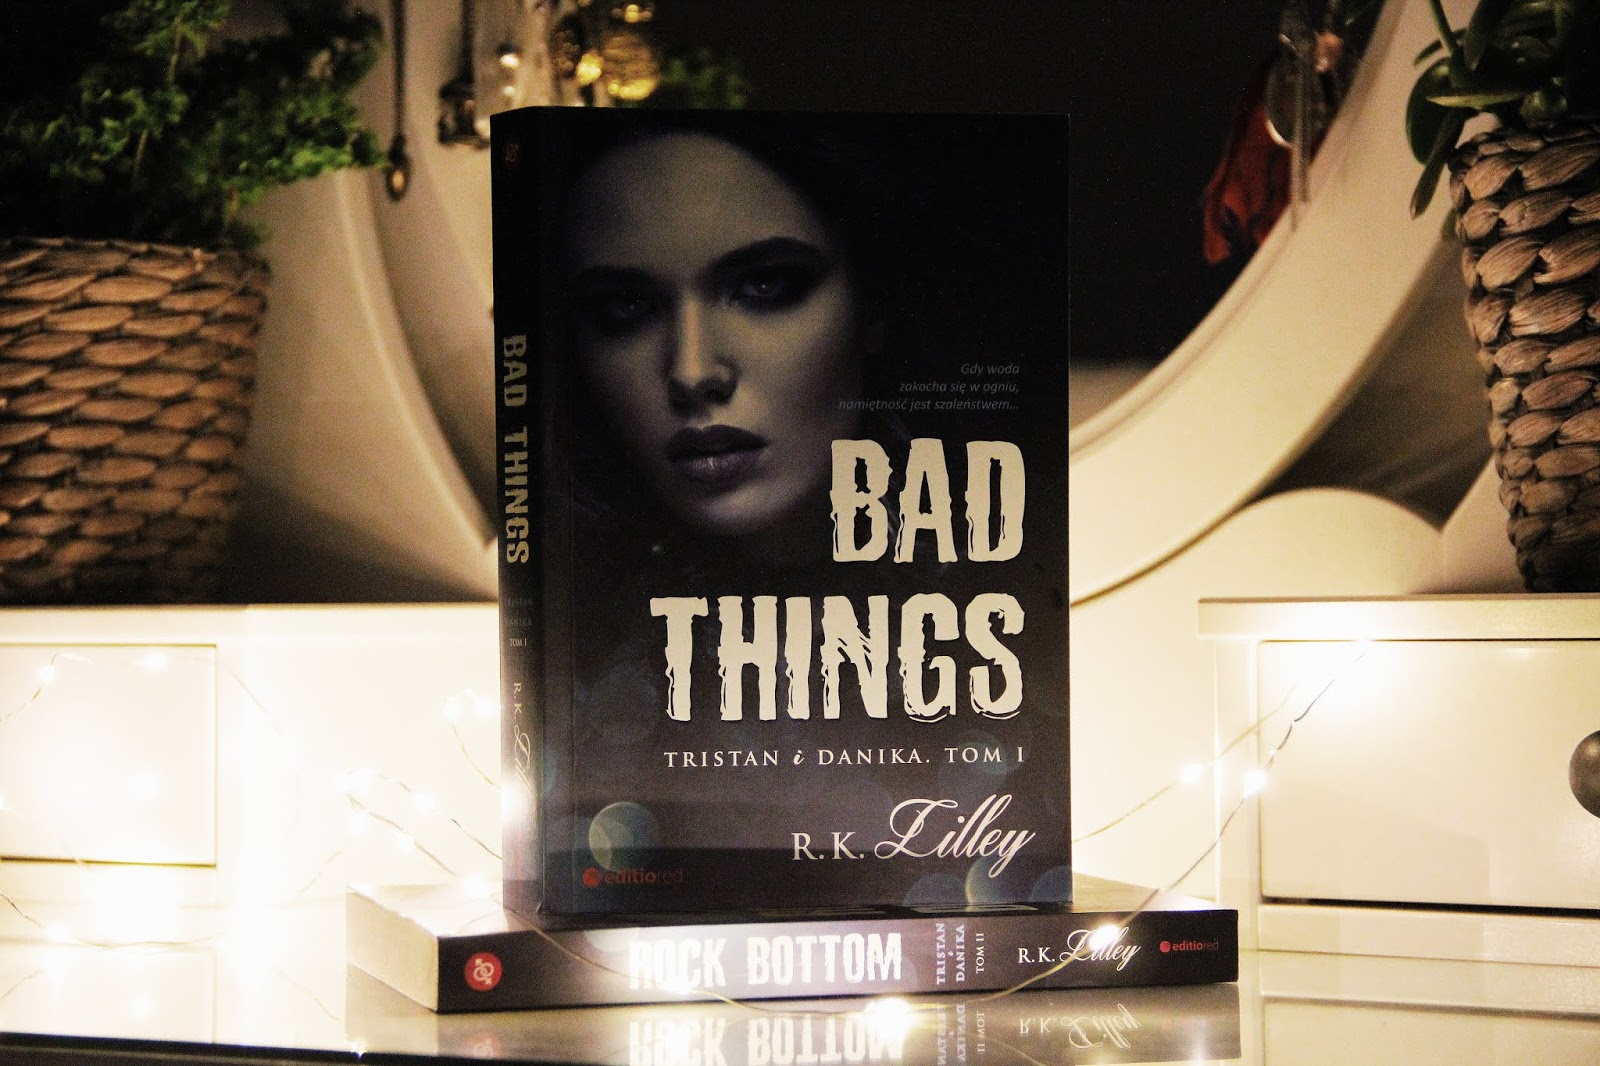 Bad things - R.K. Lilley 📖